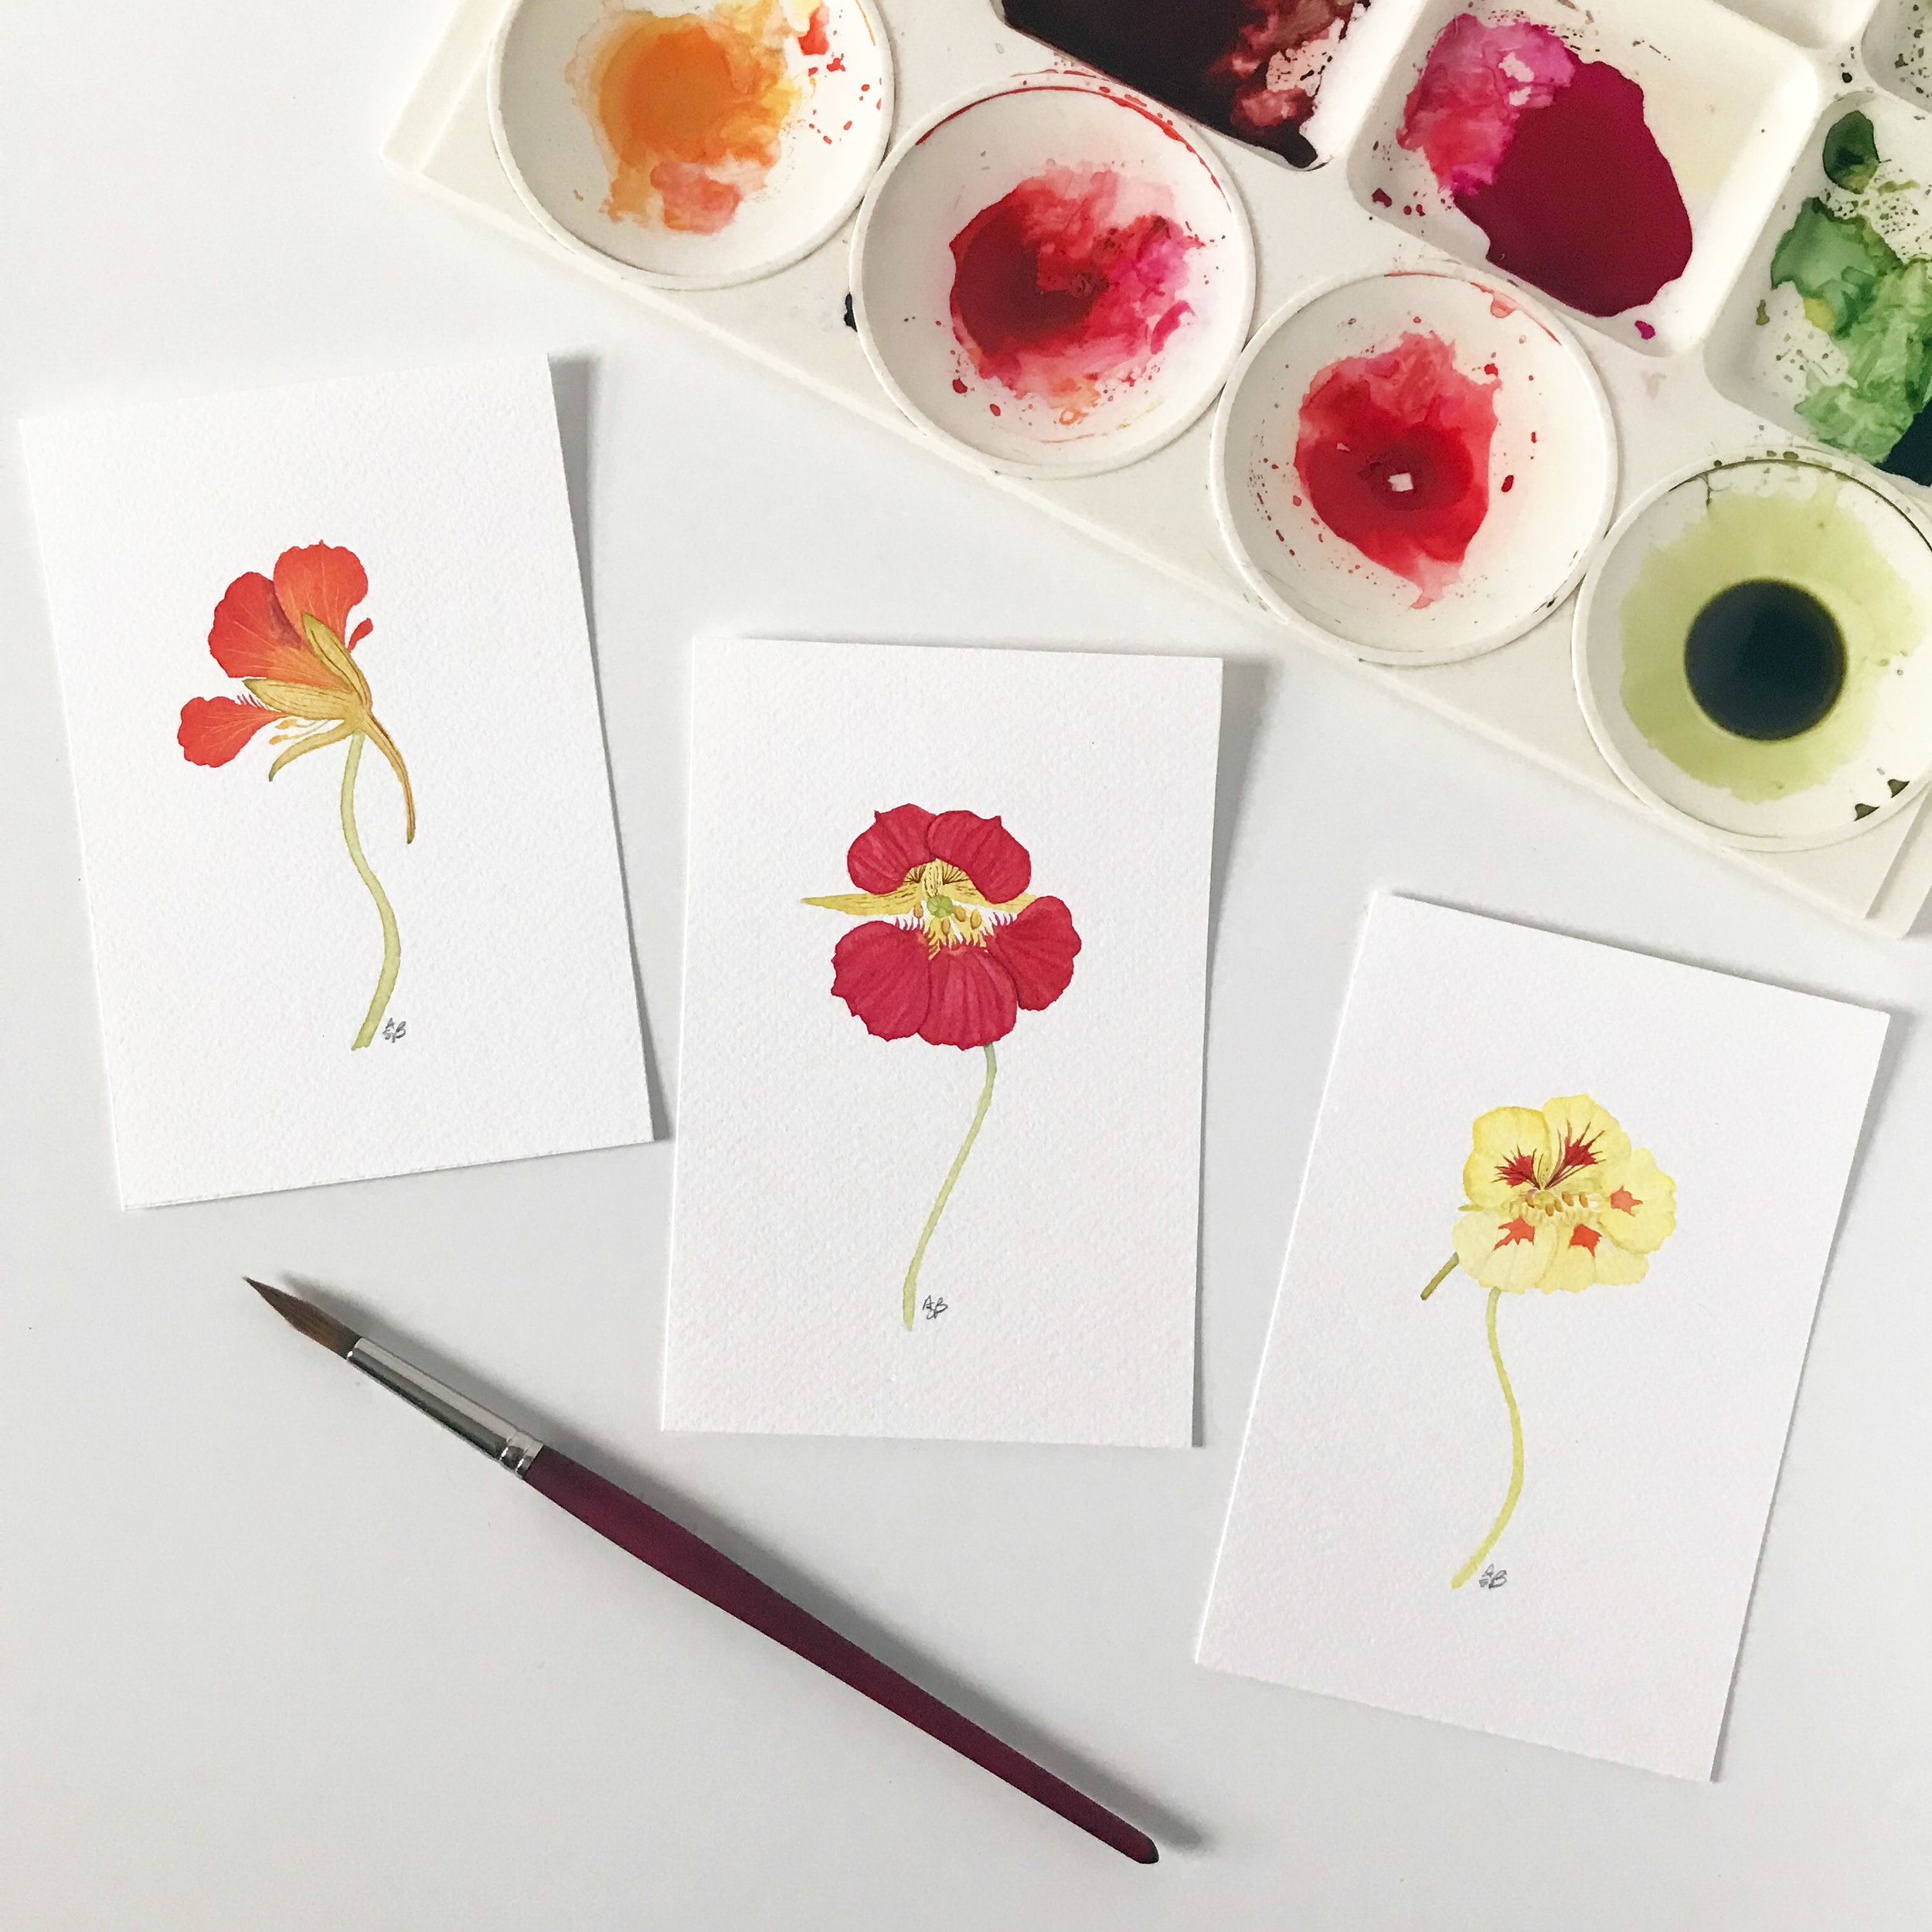 Three Botanical Watercolor Paintings of Nasturtiums by Anne Butera